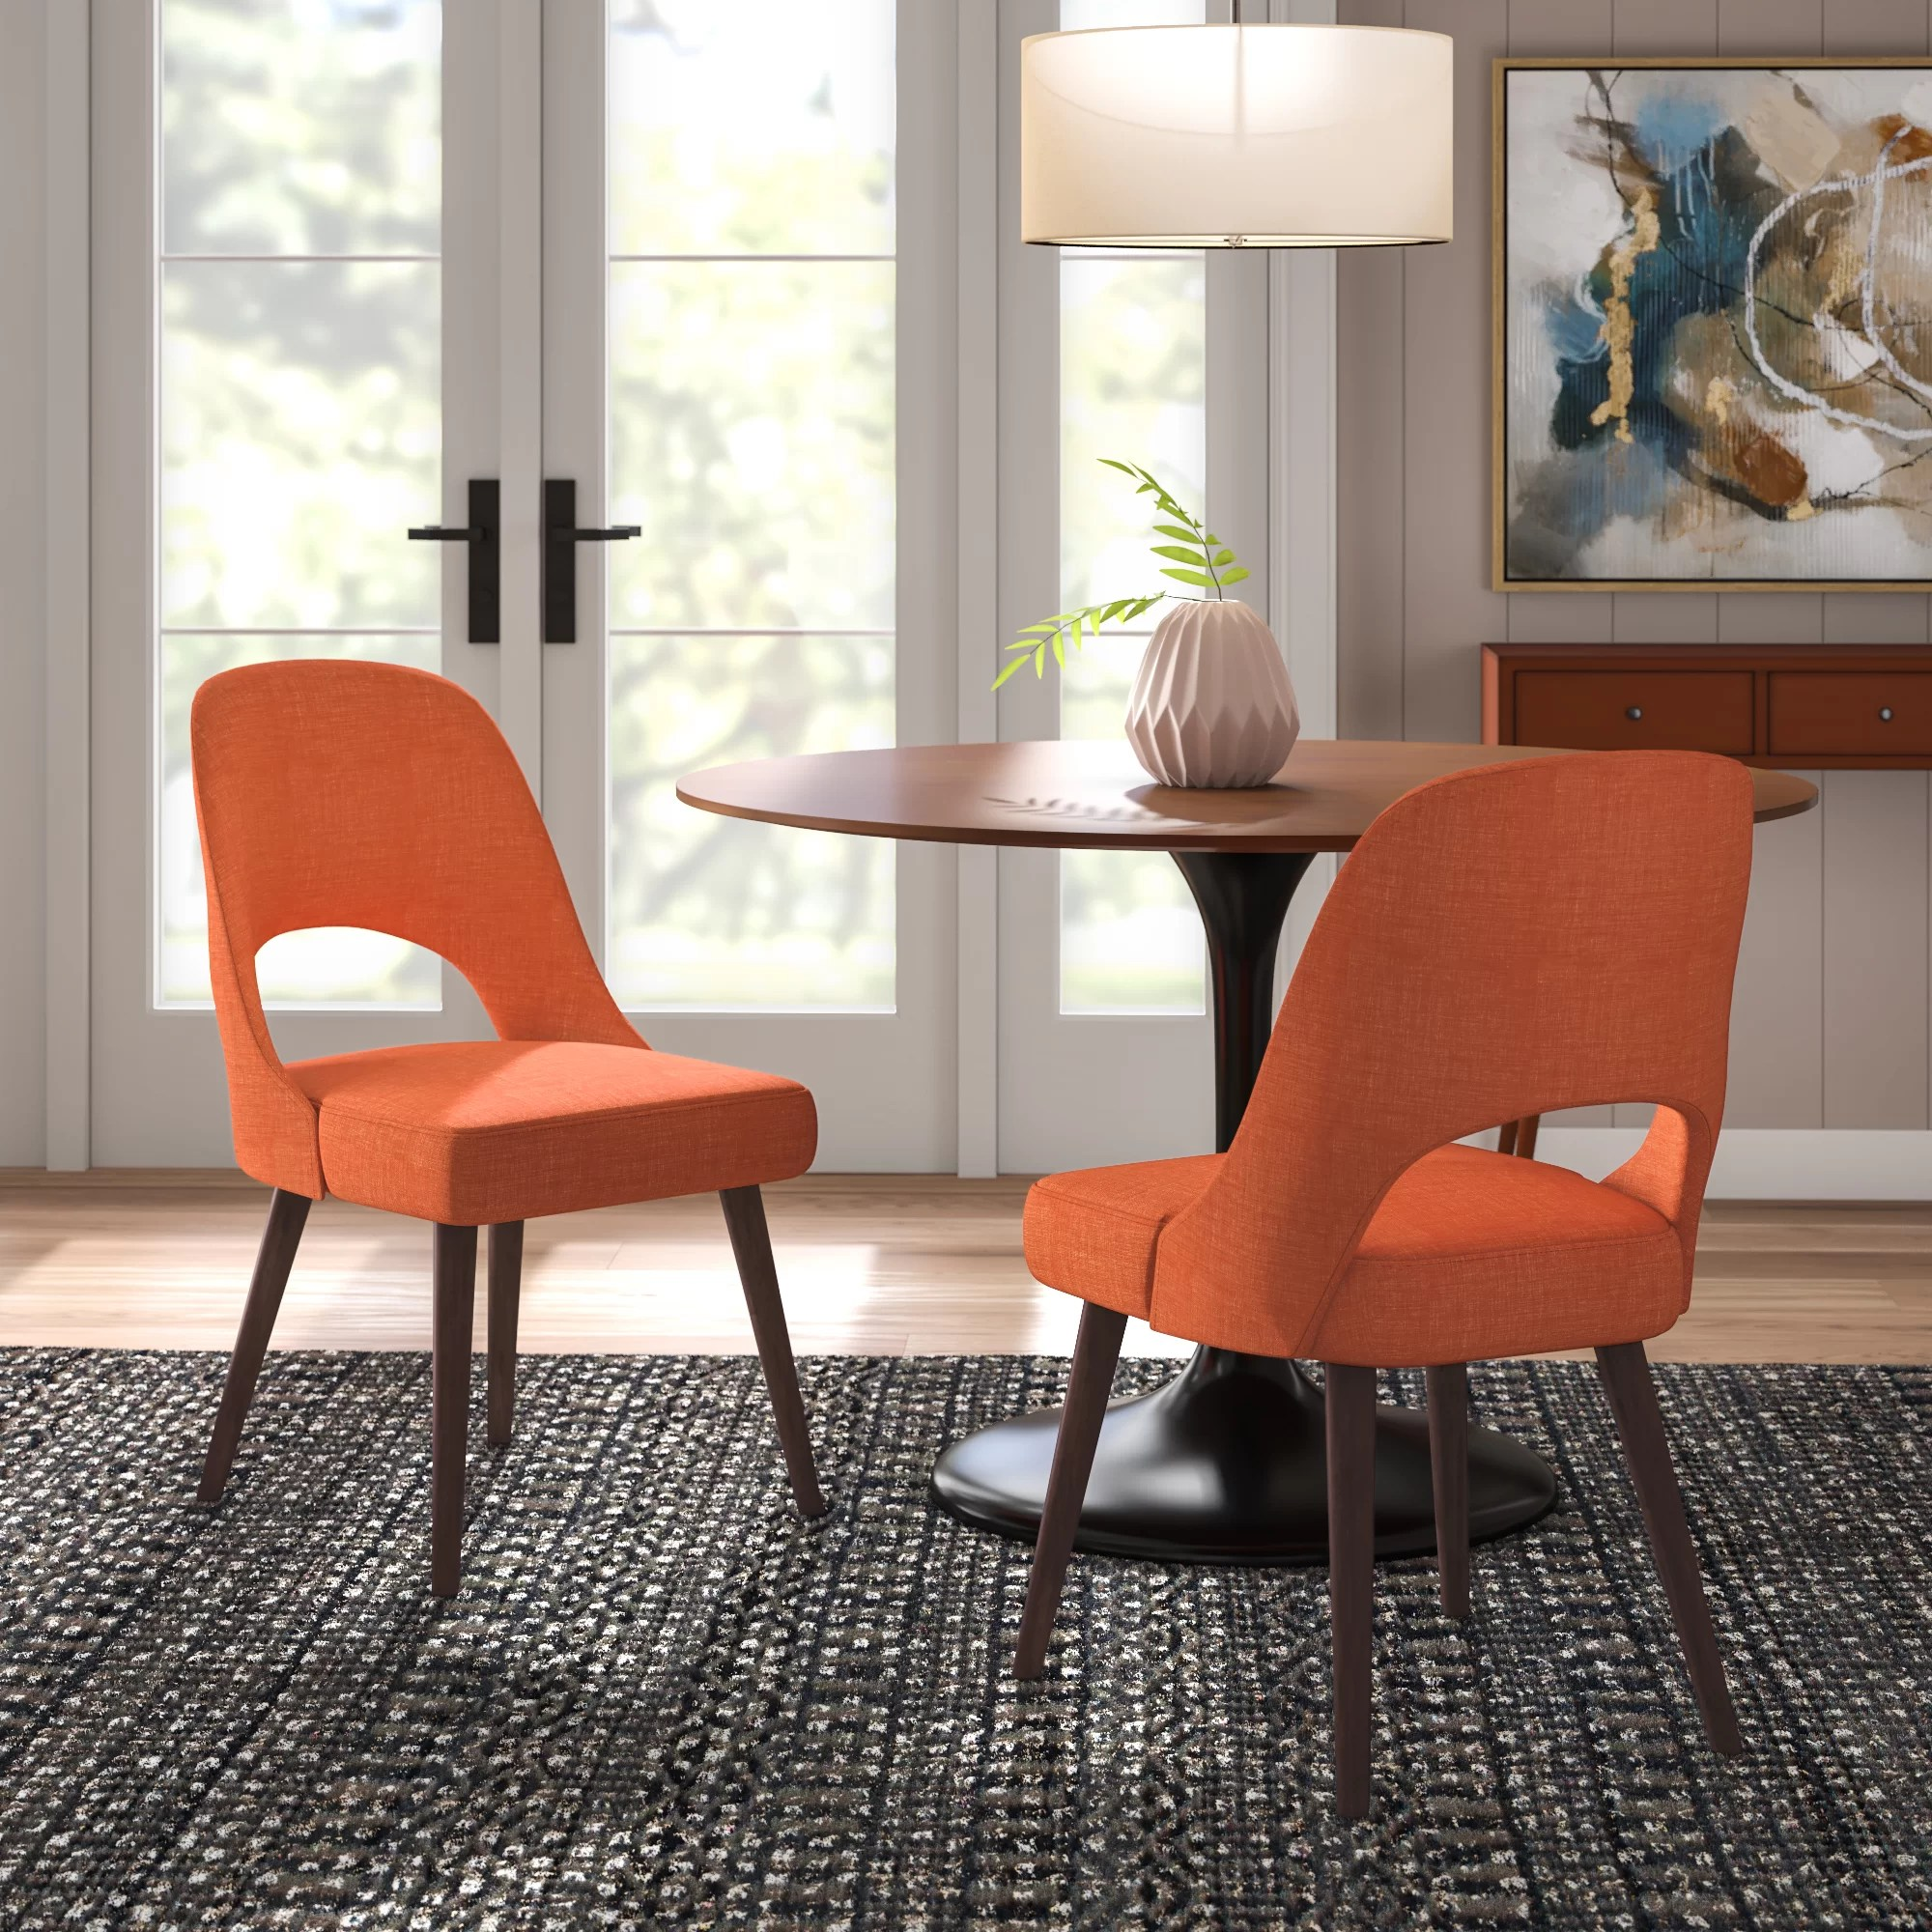 Dining Room Upholstered Chairs Berardi Upholstered Dining Chair